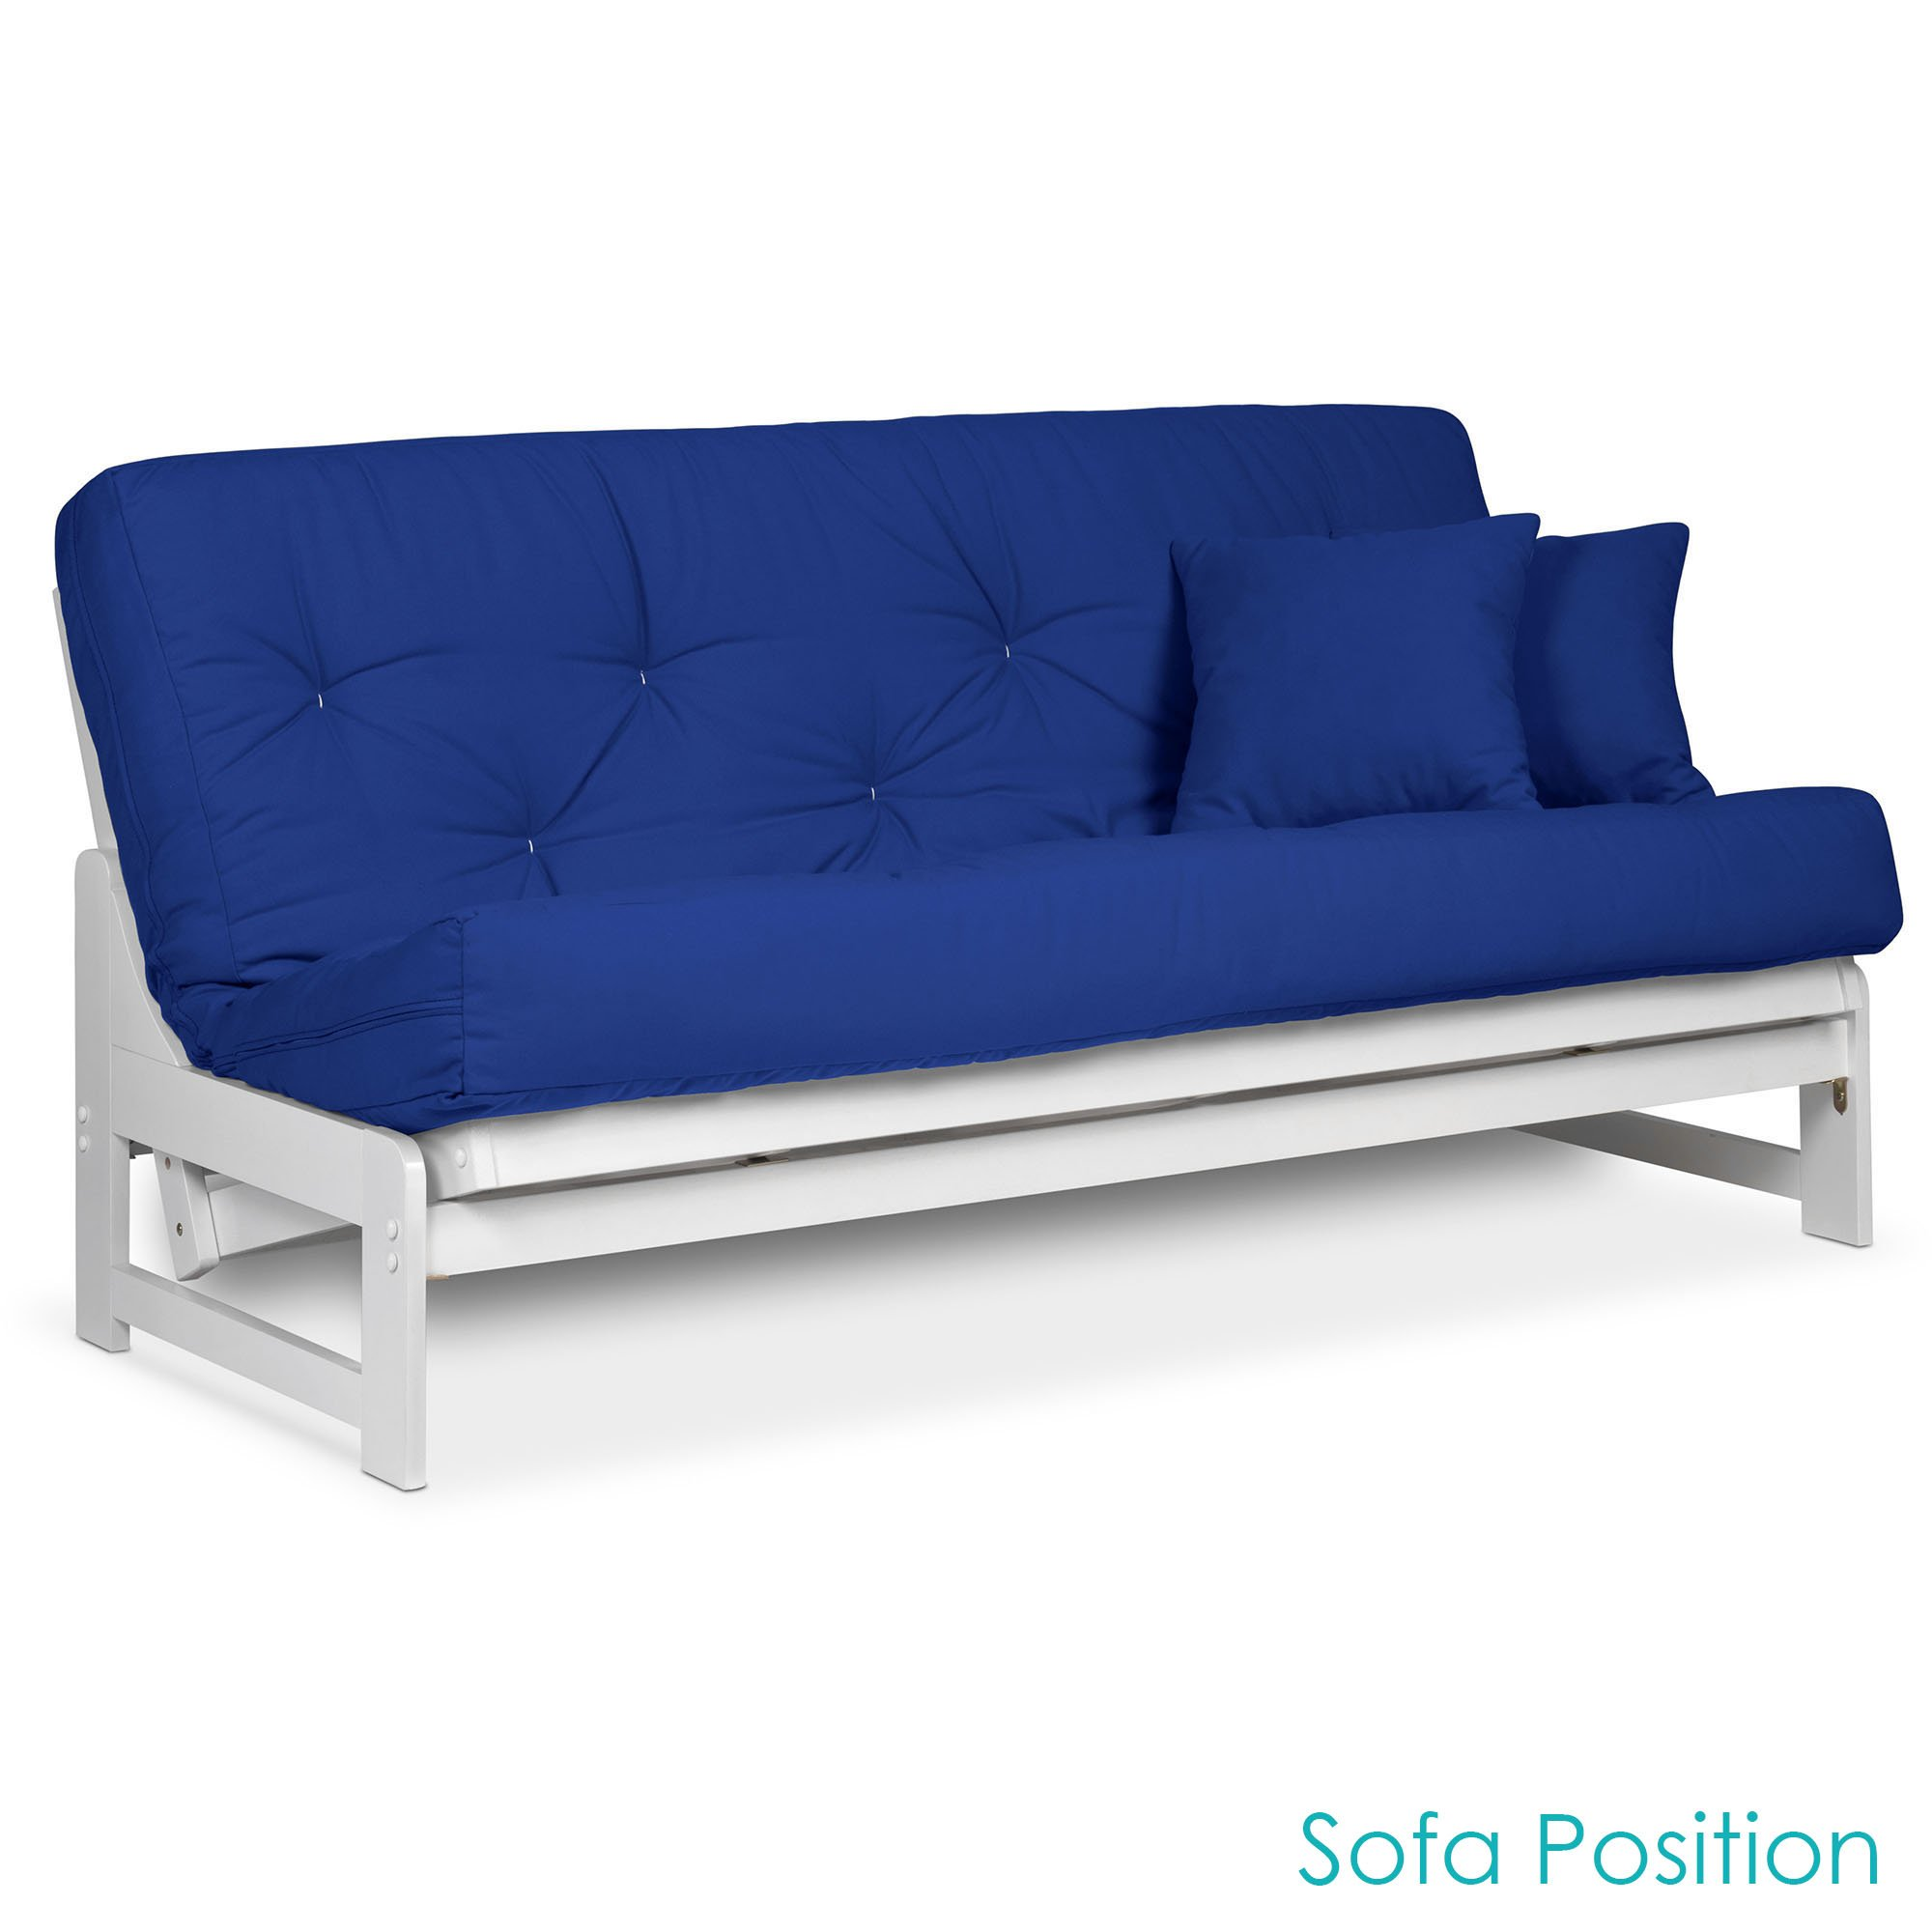 Arden White Finish Futon Set (Full or Queen Size), Armless Wood Futon Frame with Mattress Included (Twill Royal Blue), More Mattress Colors Available, Space Saving Modern Sofa Bed Sleeper